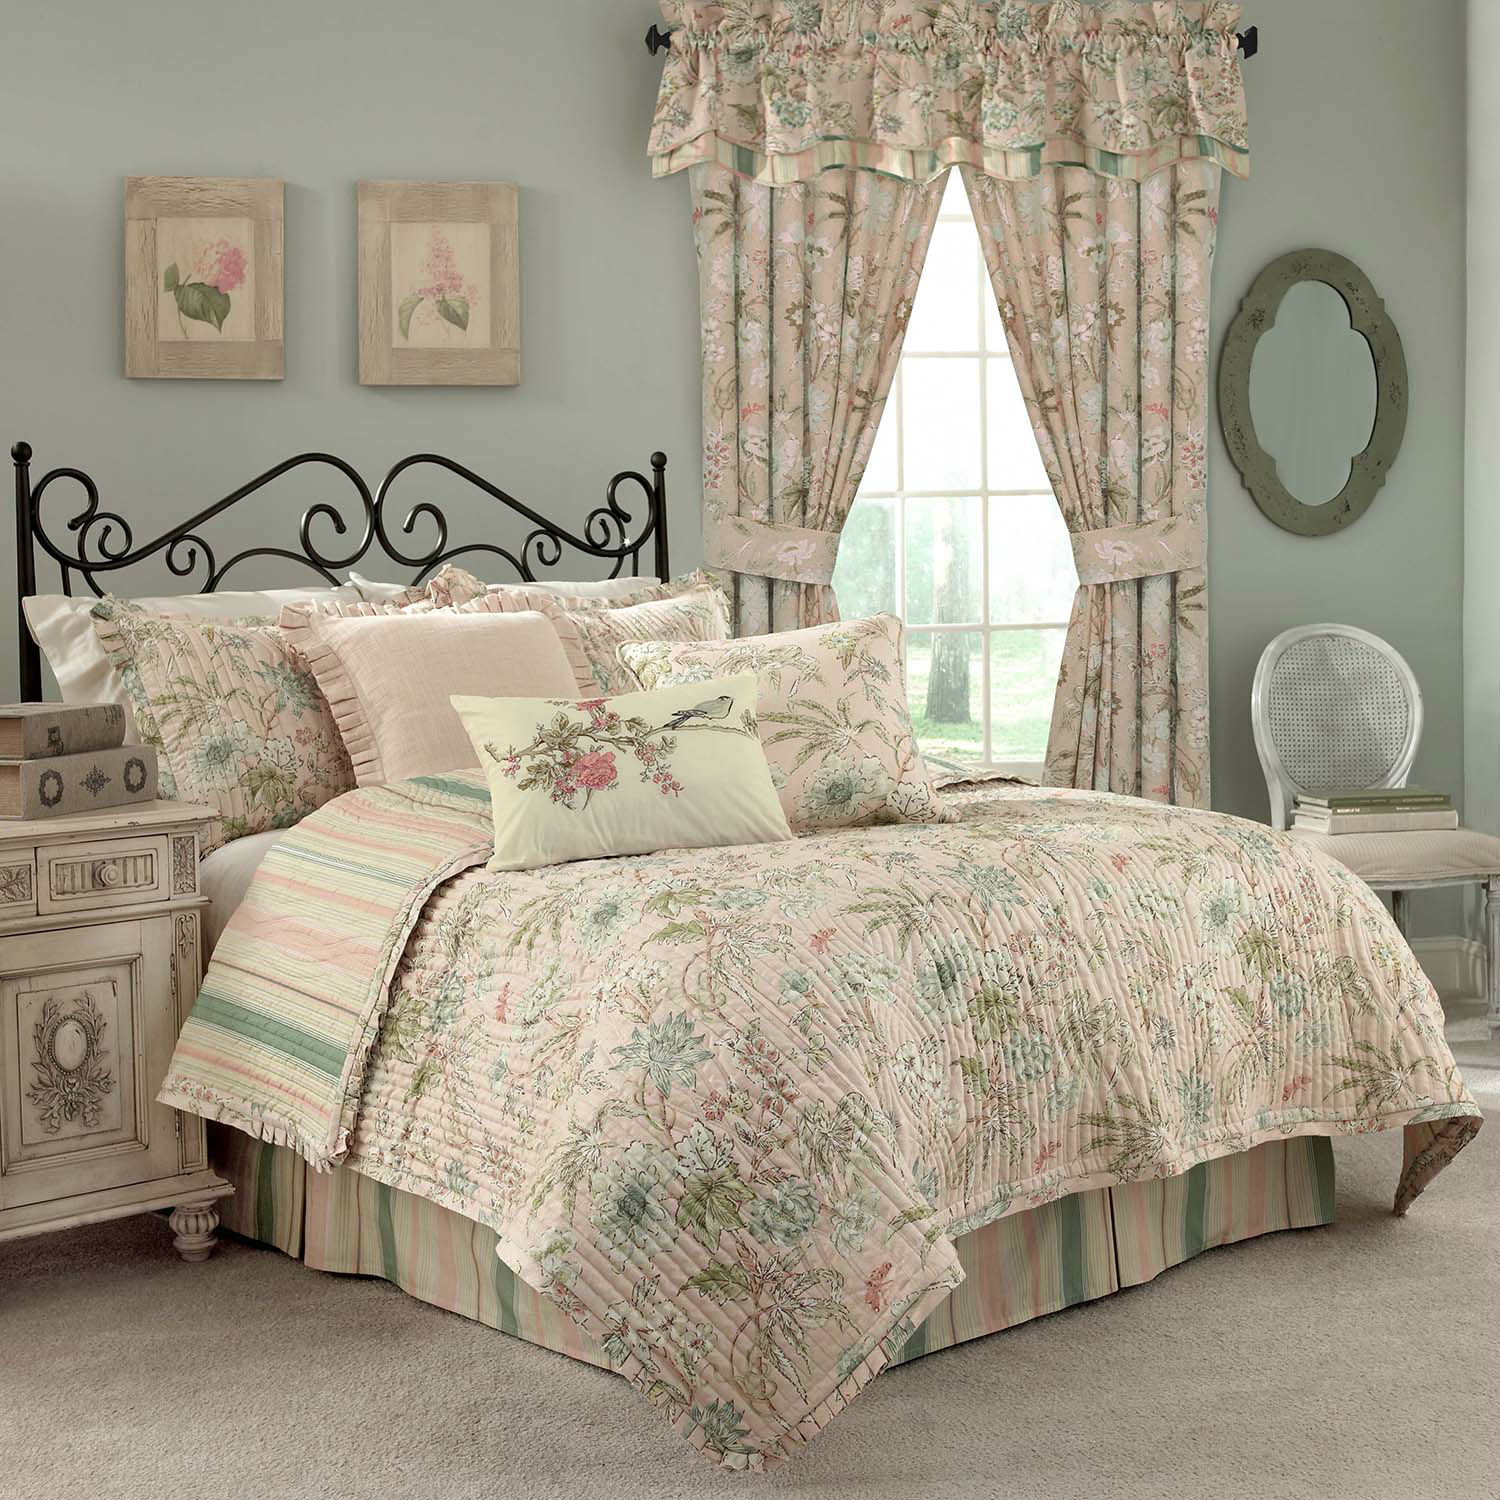 Cape Coral By Waverly Bedding Beddingsuperstore Com